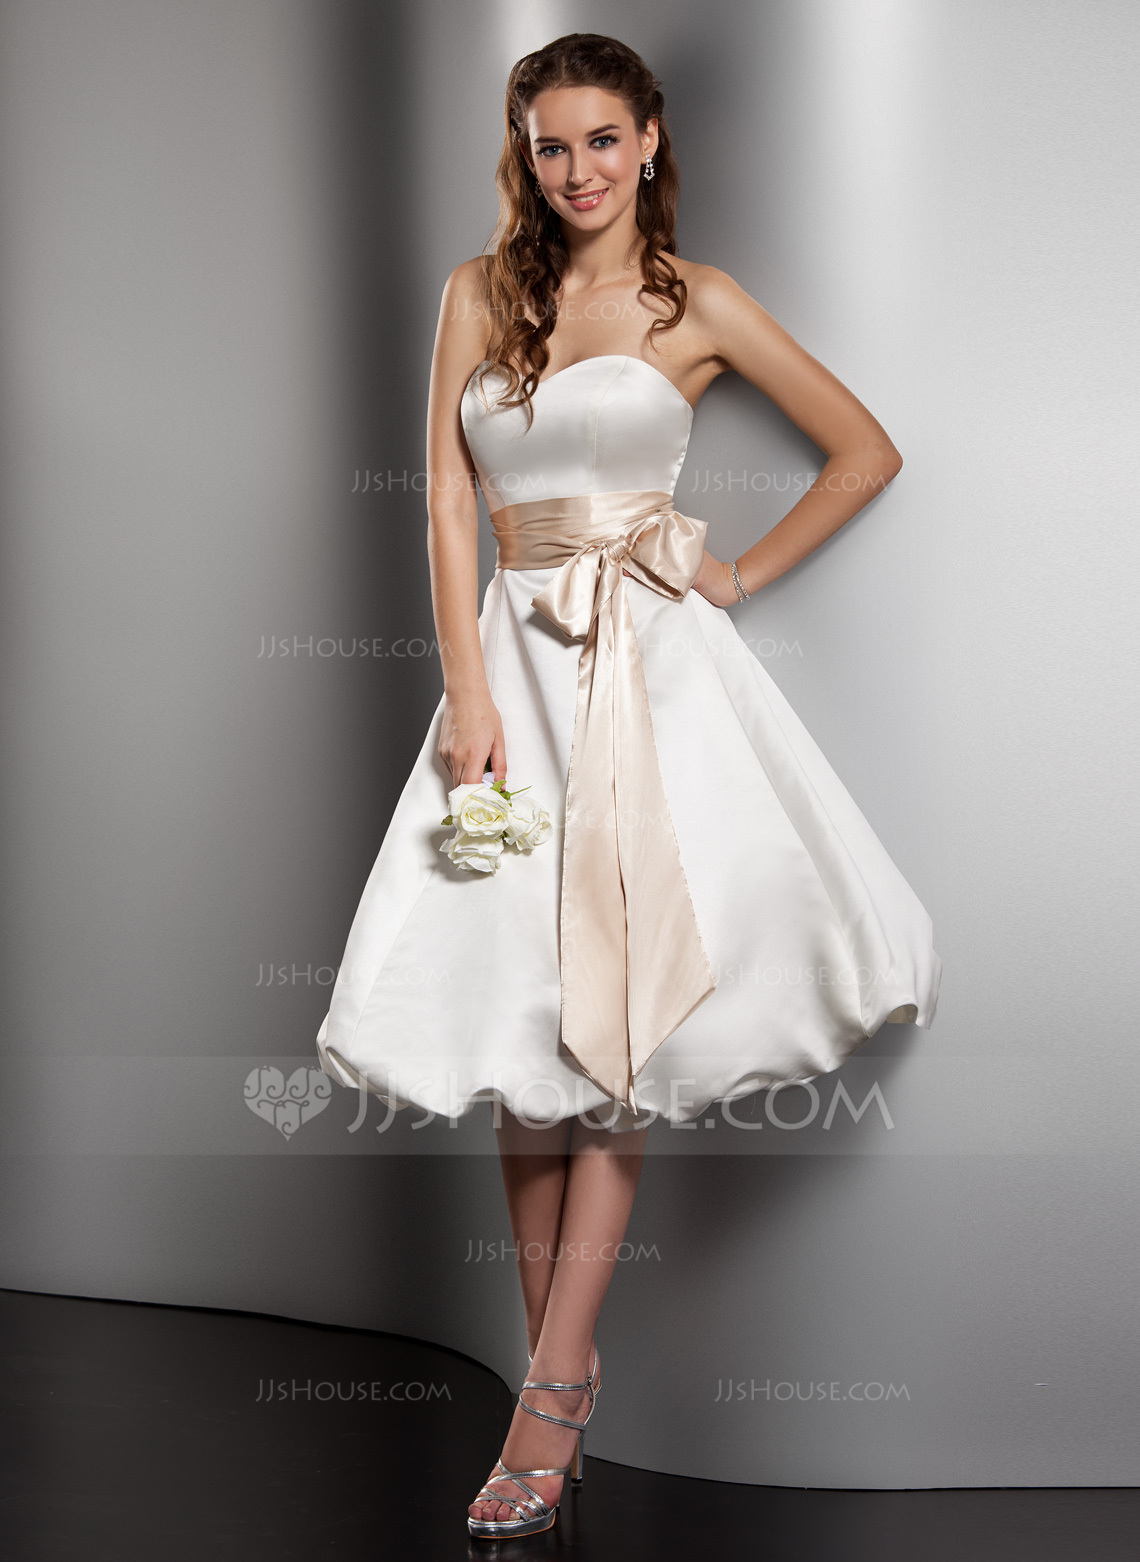 Wedding Dresses In Color p wedding dresses with color A Line Princess Sweetheart Knee Length Satin Wedding Dress With Sash Bow